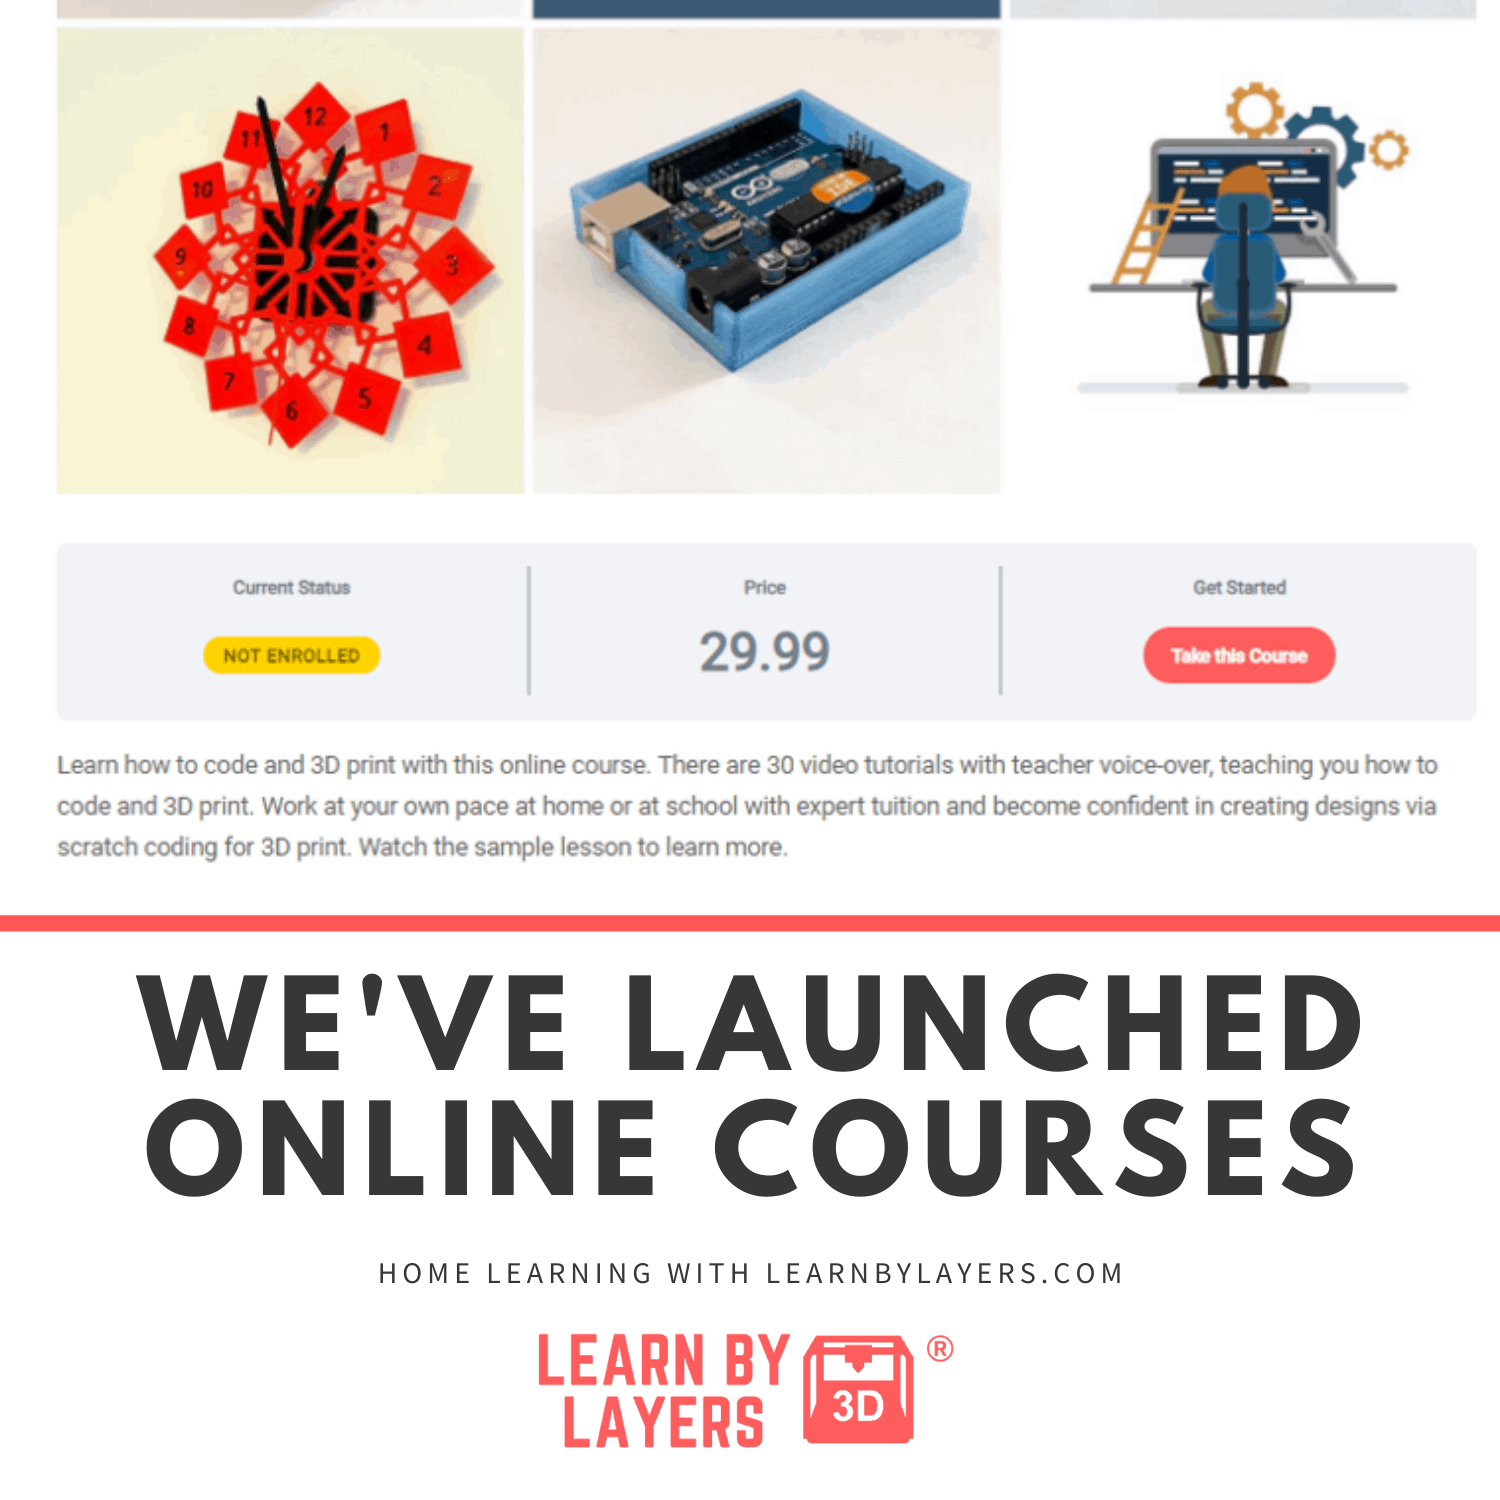 3d printing and coding online courses